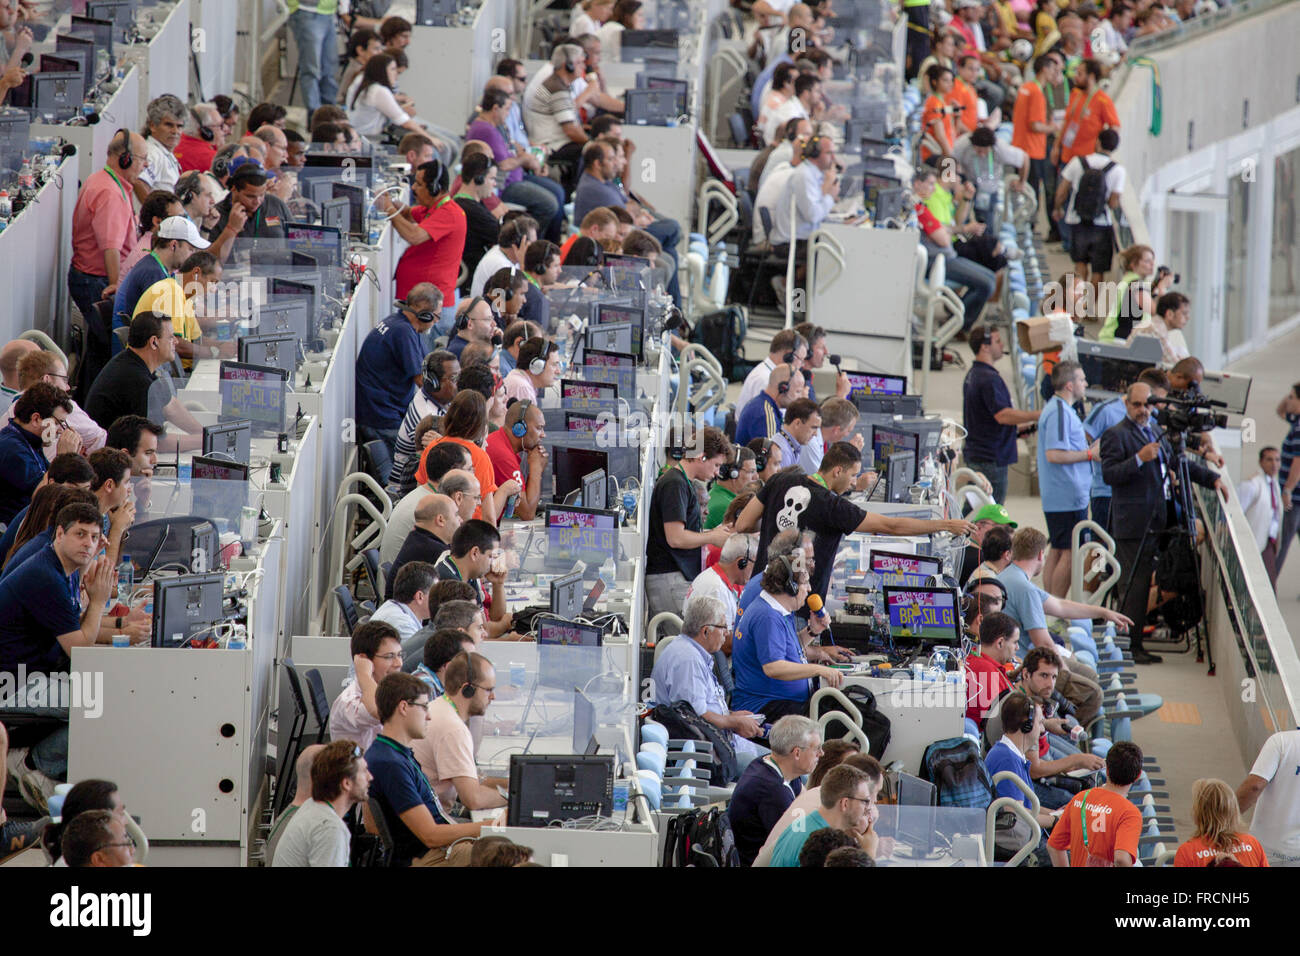 Tribune press at Estadio do Maracana during the friendly match between Brazil and England - Stock Image